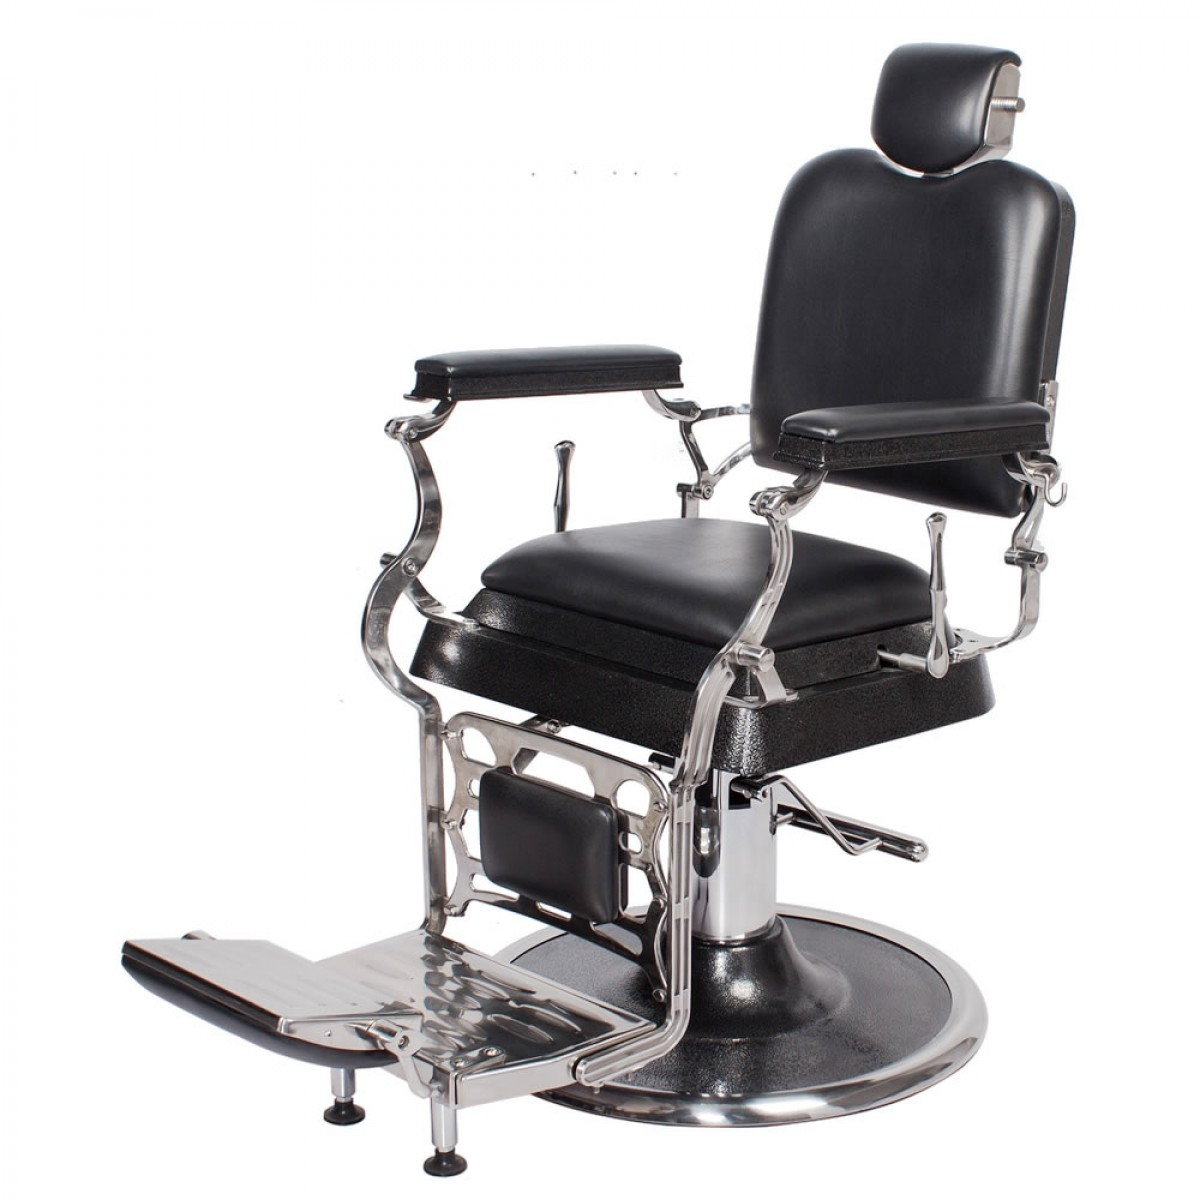 """EMPEROR"" Antique Barber Chair, barber shop equipment, barber shop furniture"